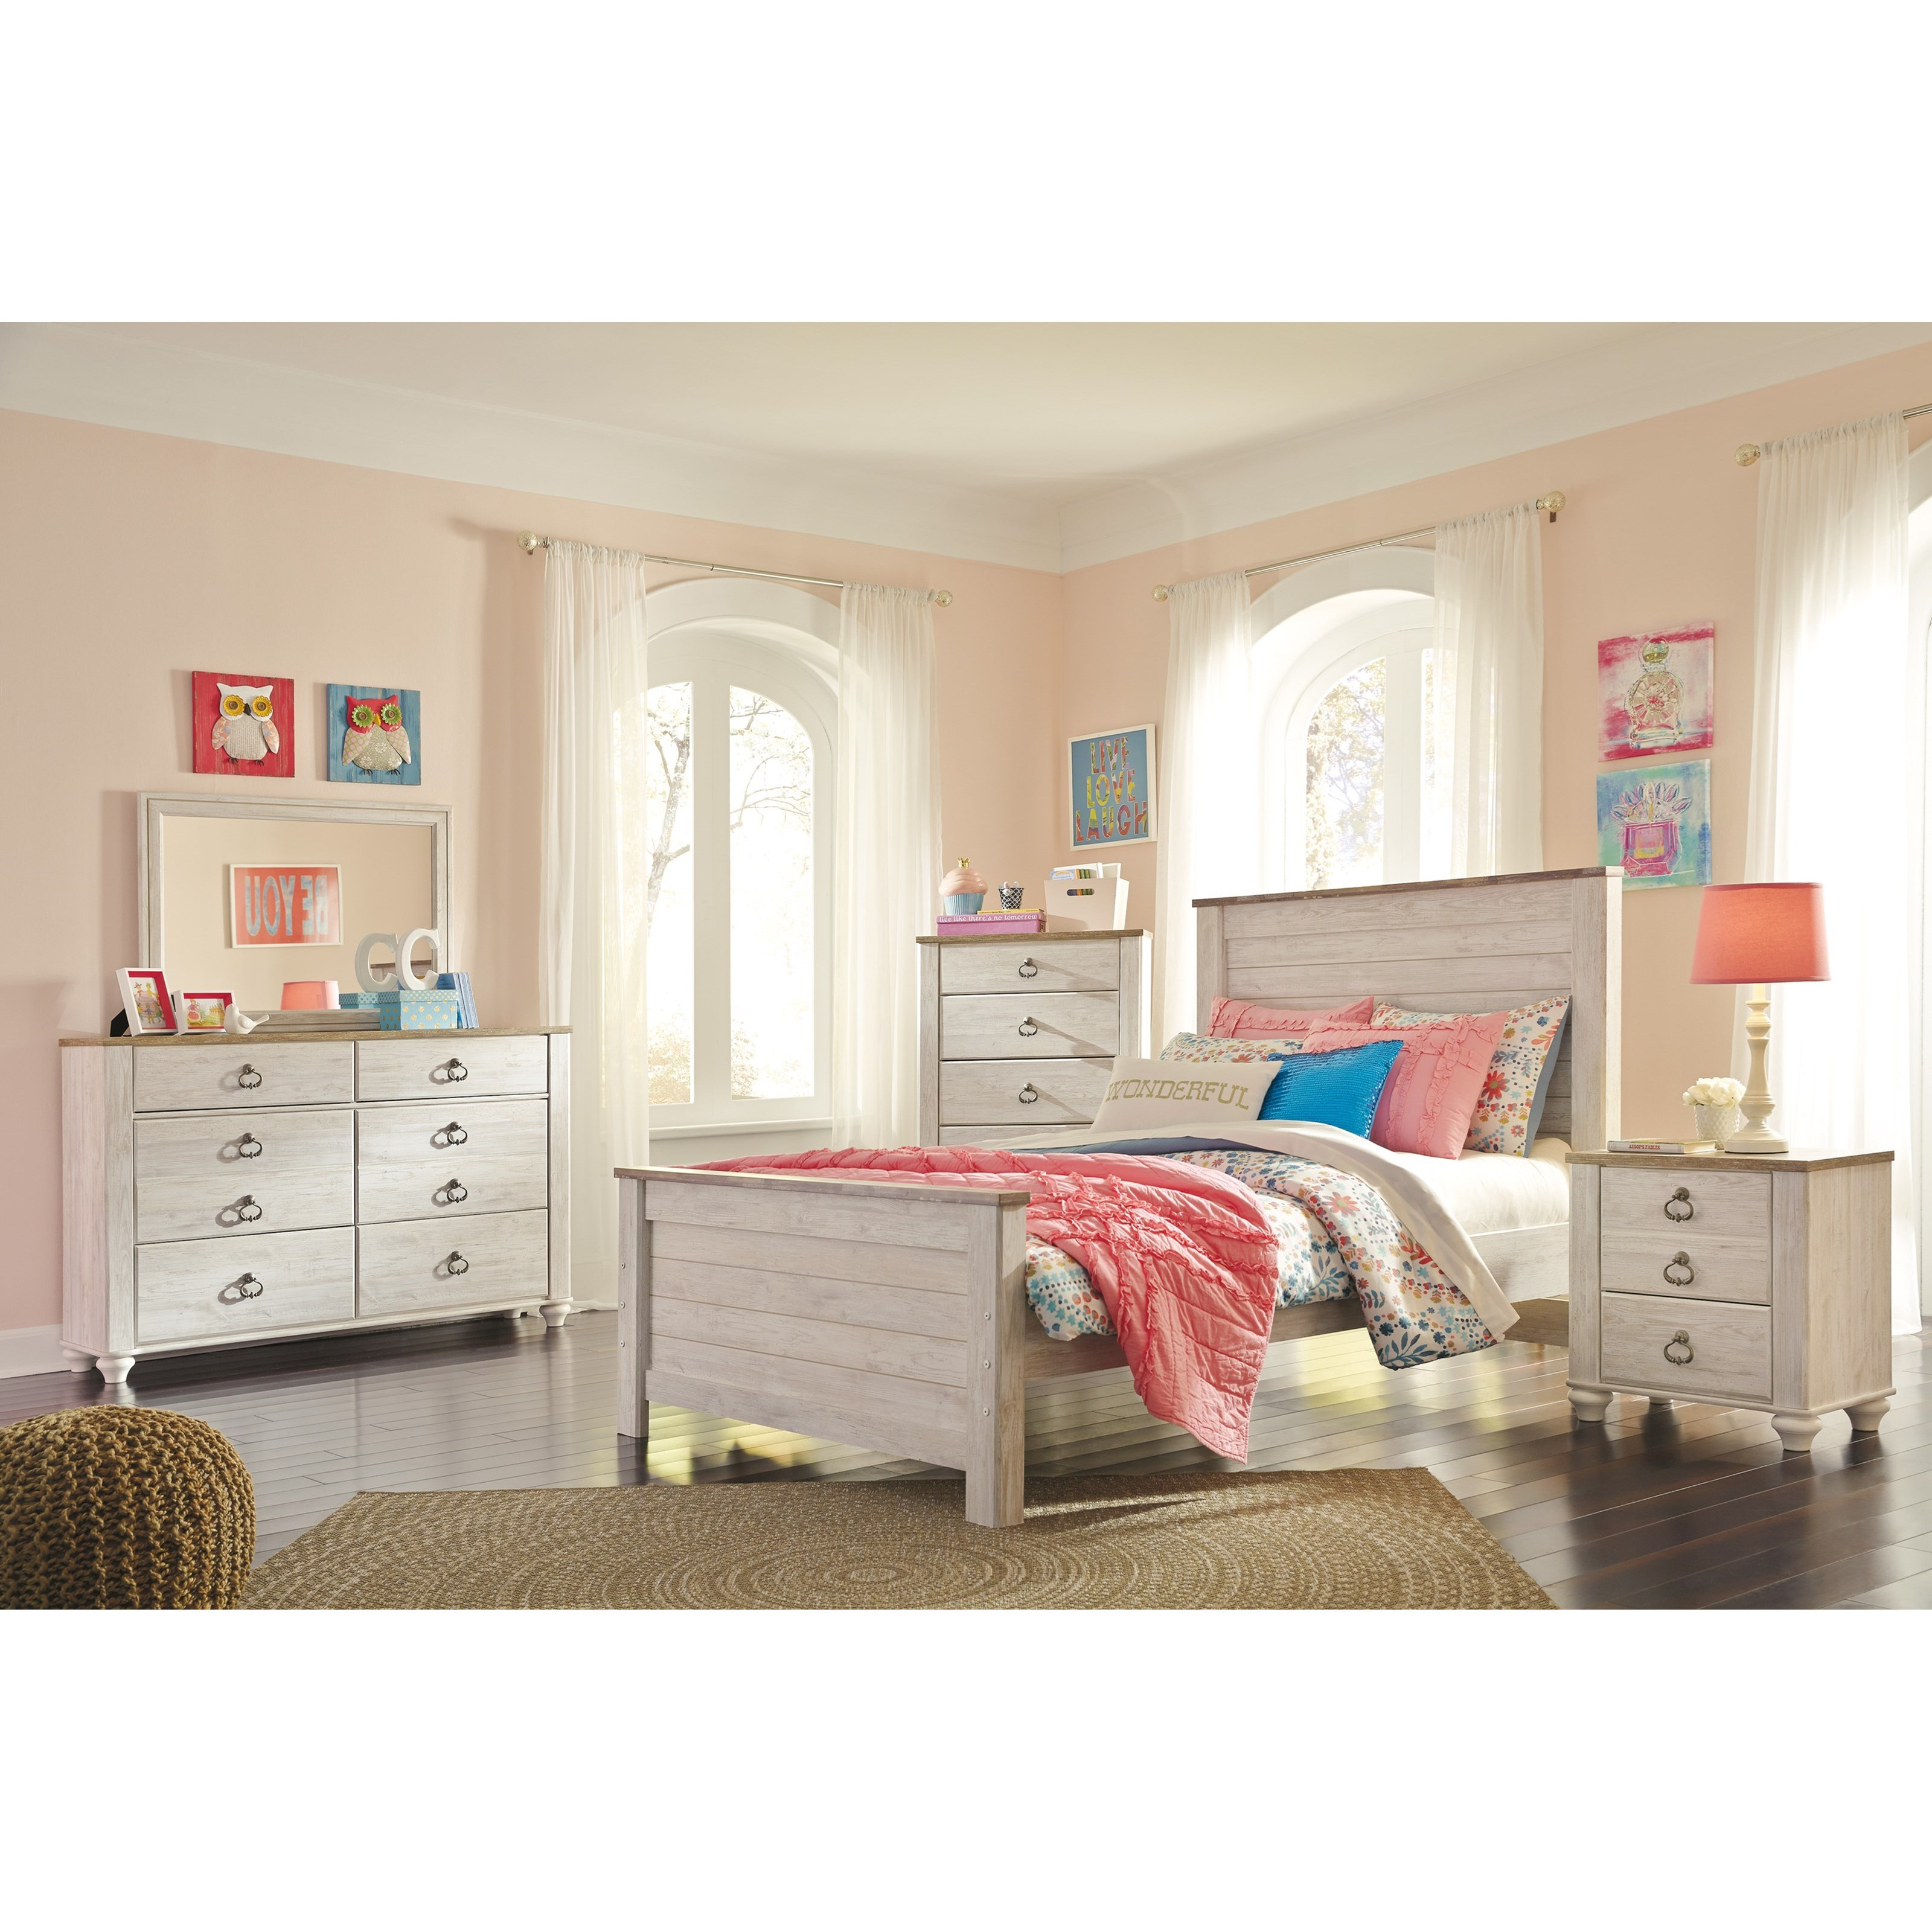 Signature design by ashley willowton full bedroom group for Bedroom furniture groups